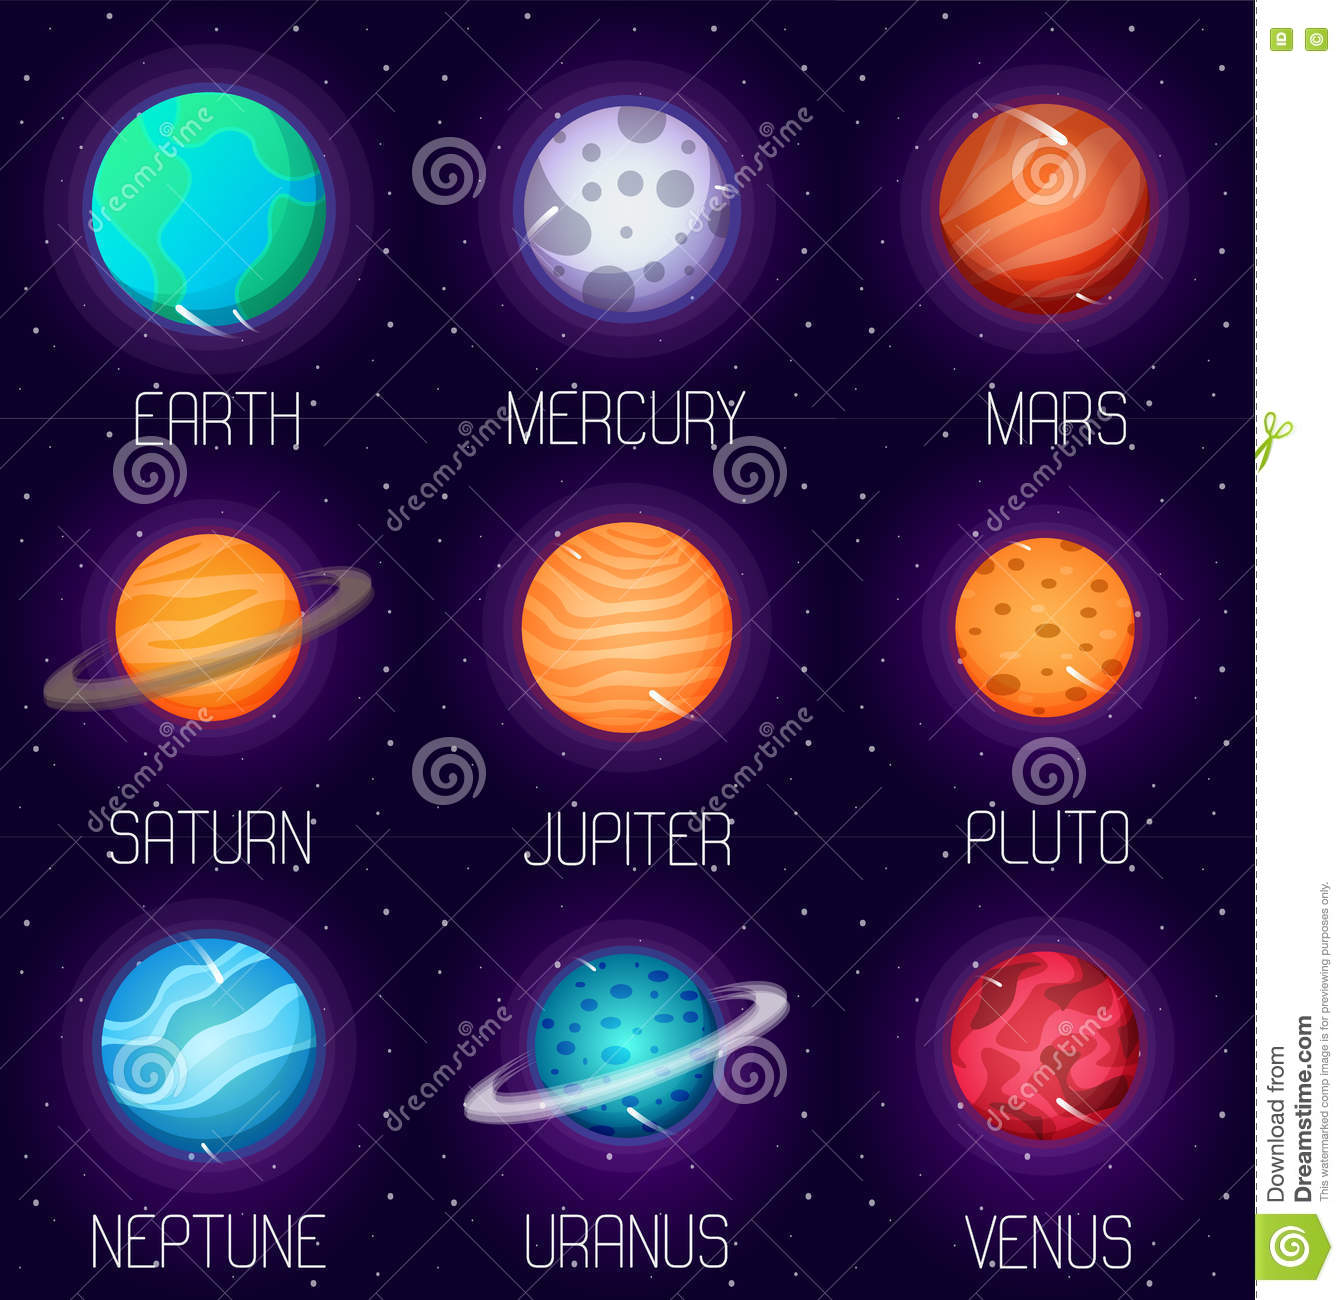 Planets cartoons illustrations vector stock images for Outer space planets